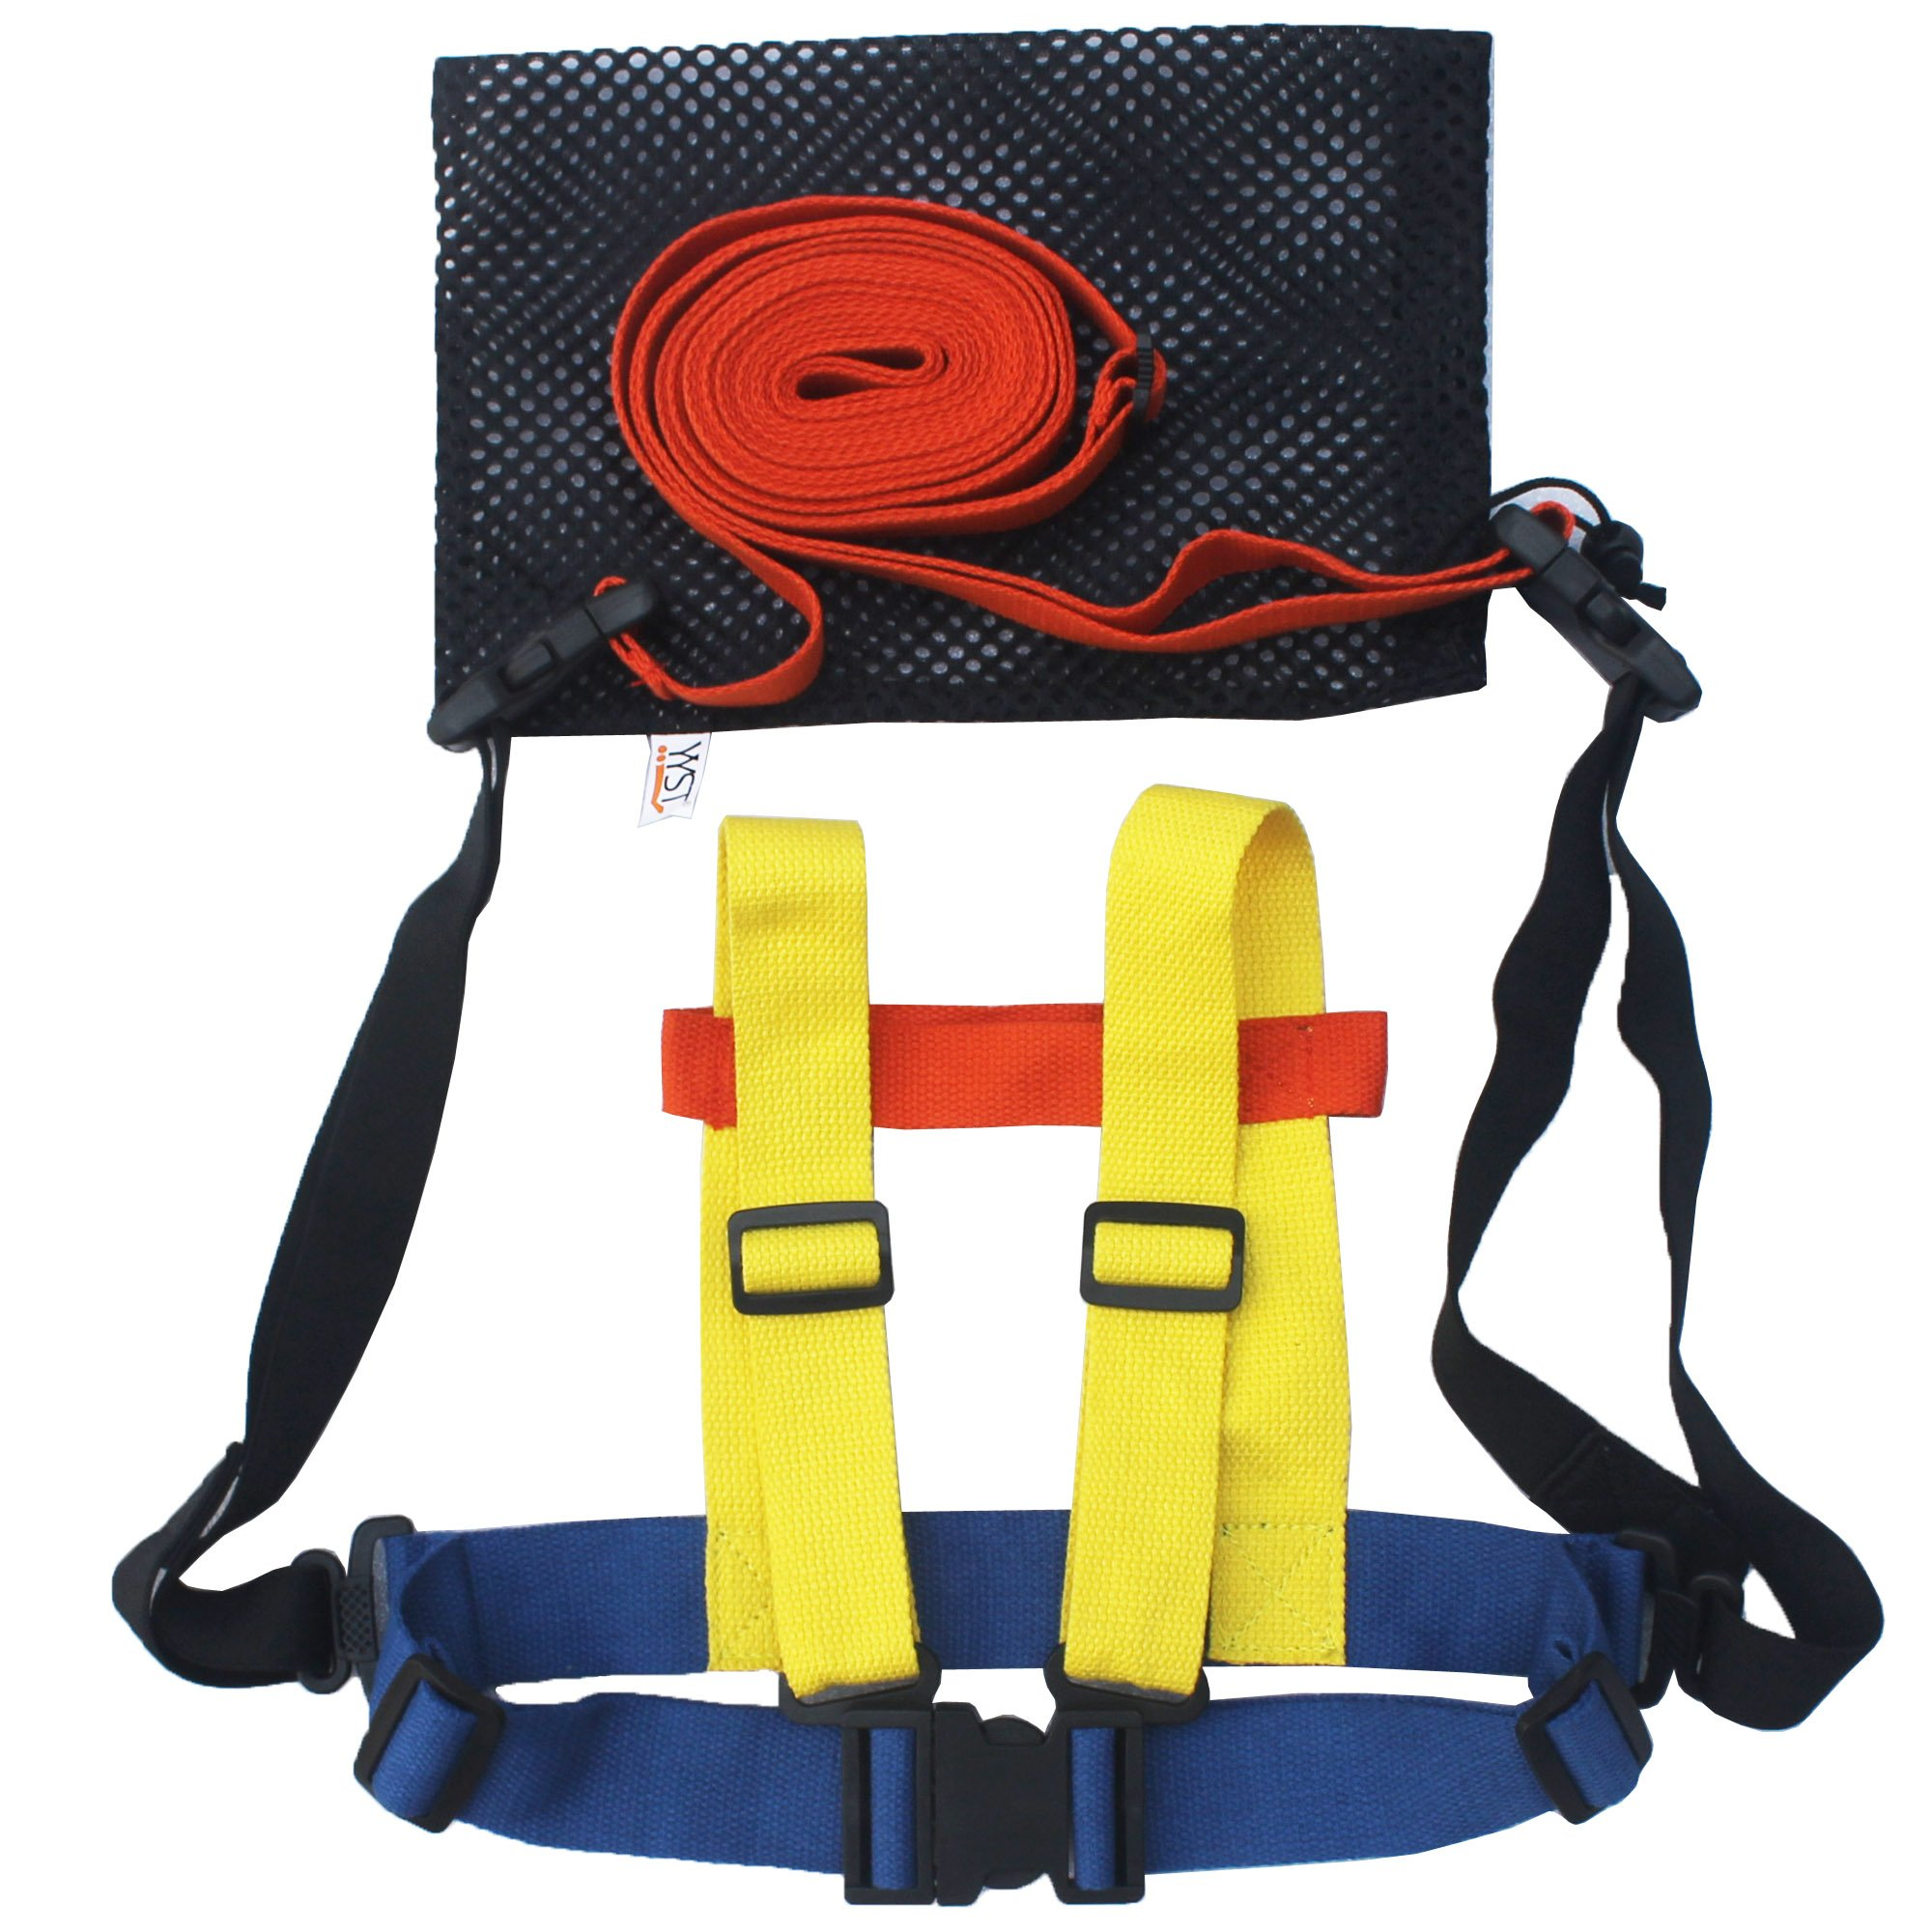 YYST Kids Ski Shoulder Harness Ski Leash Ski Training Harness Teach Kids to Ski (One Shoulder and Waist Strap, One Leash)